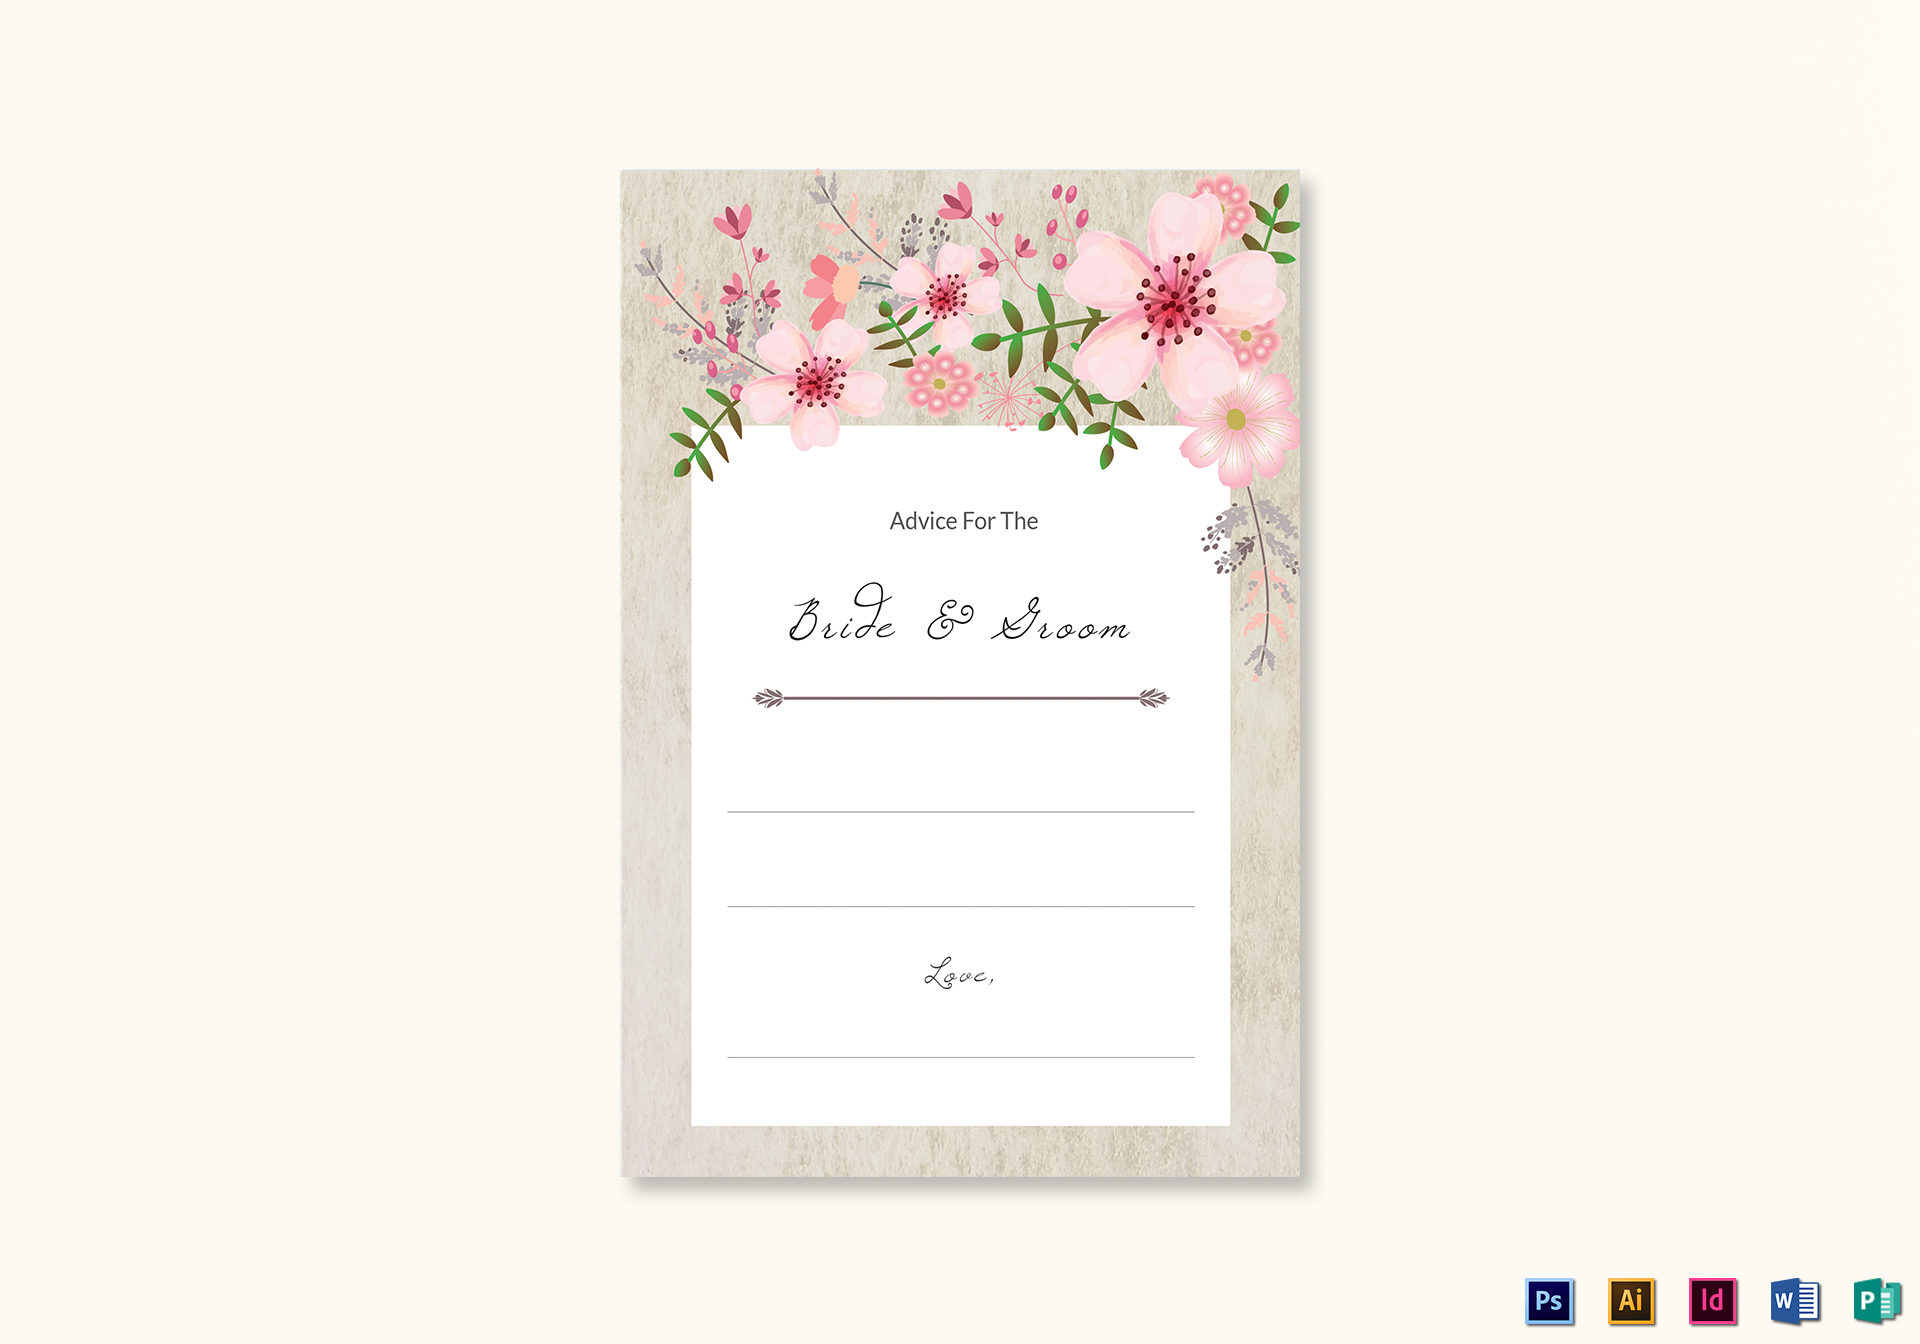 Pink Floral Wedding Advice Card Design Template In Psd Word